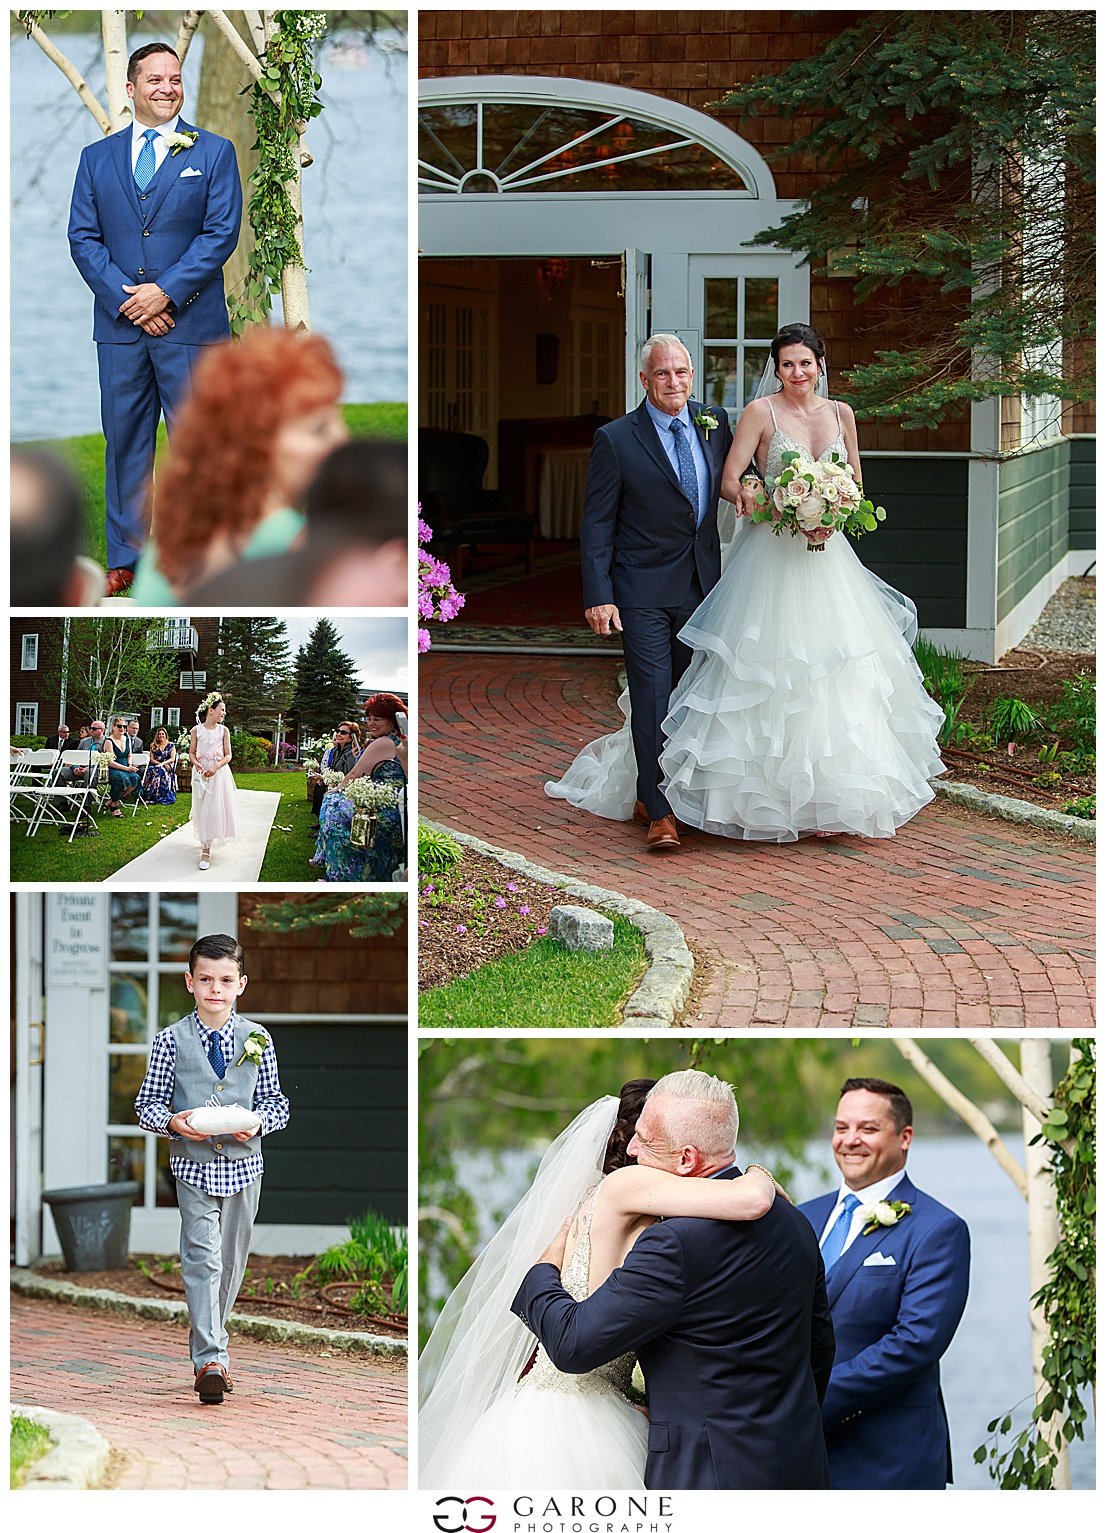 Shauna_Nathan_Carriage_House_Chuch_Landing_Lake_Winnapausakee_Wedding_0014.jpg